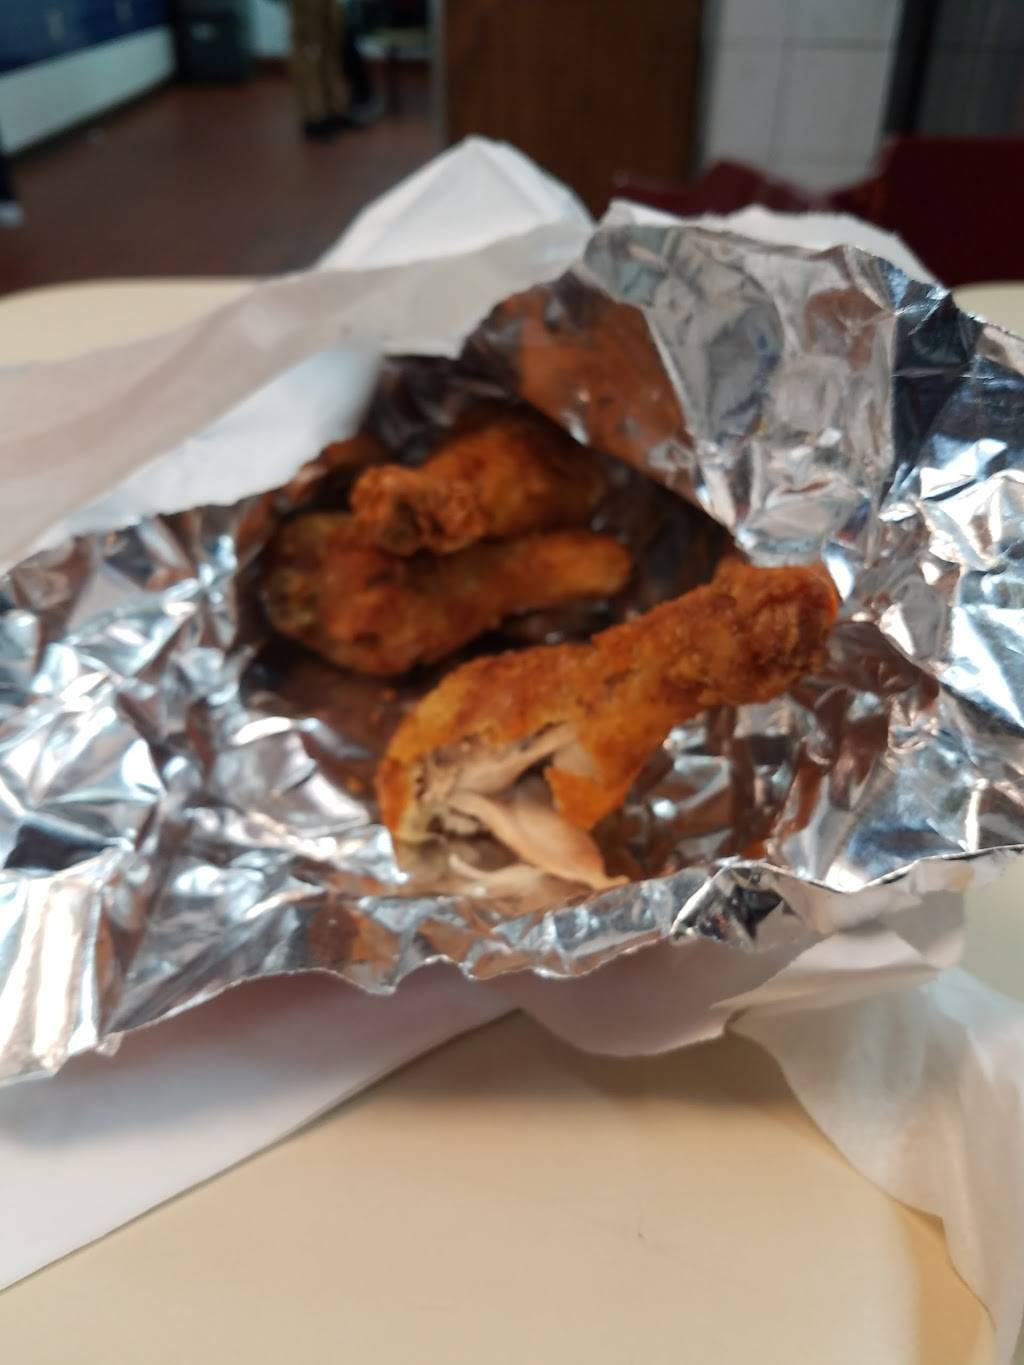 Crown Fried Chicken | restaurant | 40 Crescent Ave, Jersey City, NJ 07304, USA | 2014338333 OR +1 201-433-8333